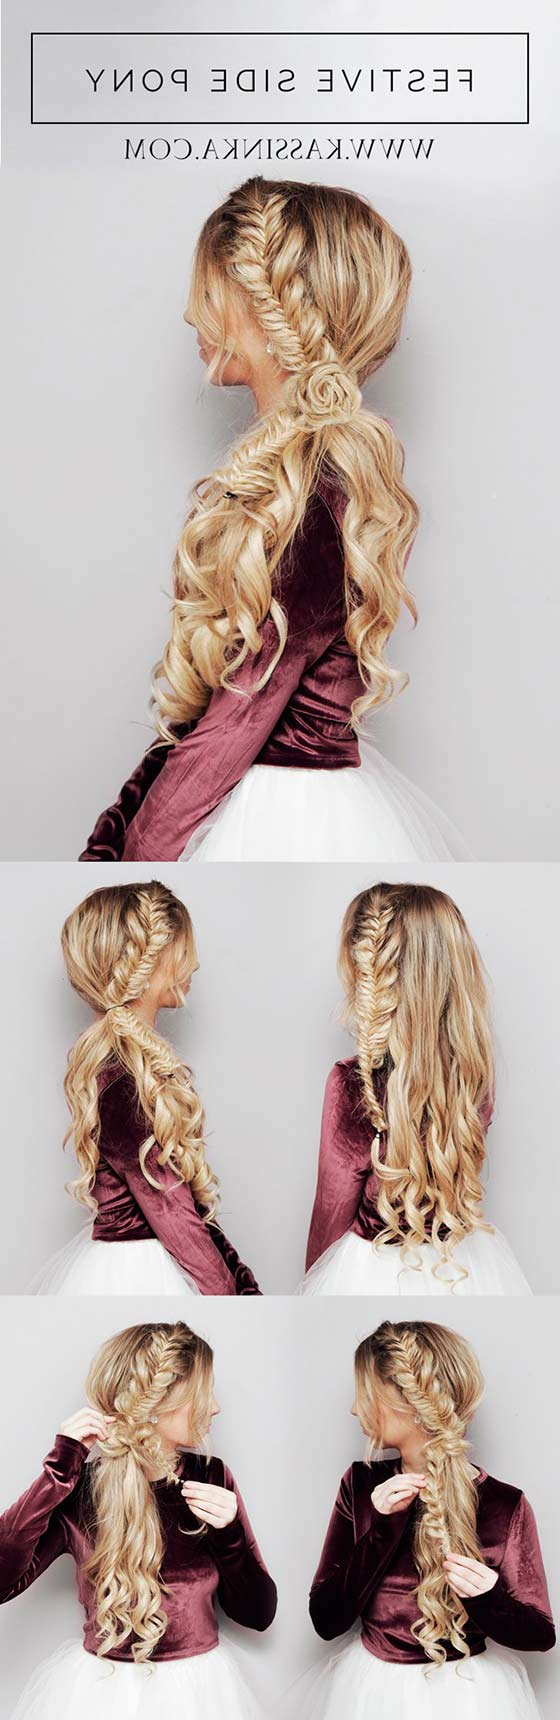 40 Braided Hairstyles For Long Hair Within Popular Textured Side Braid And Ponytail Prom Hairstyles (Gallery 17 of 20)